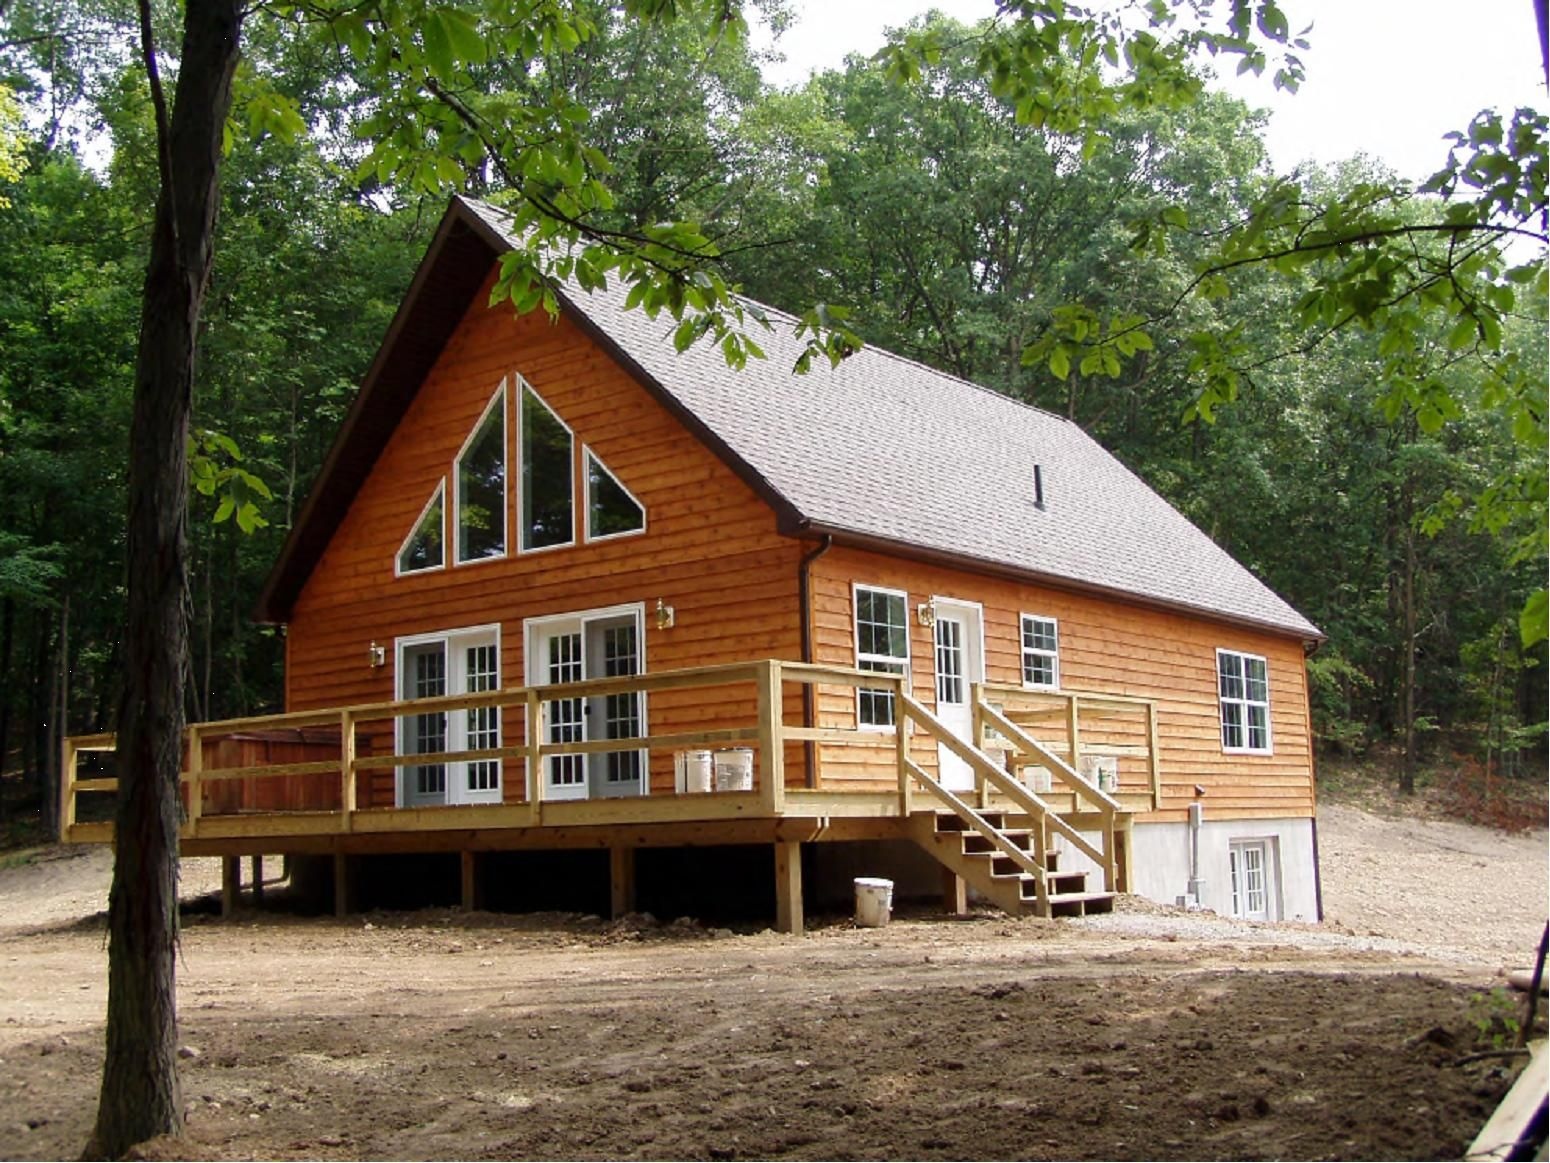 Log siding camp ideas pinterest log siding tiny E log siding